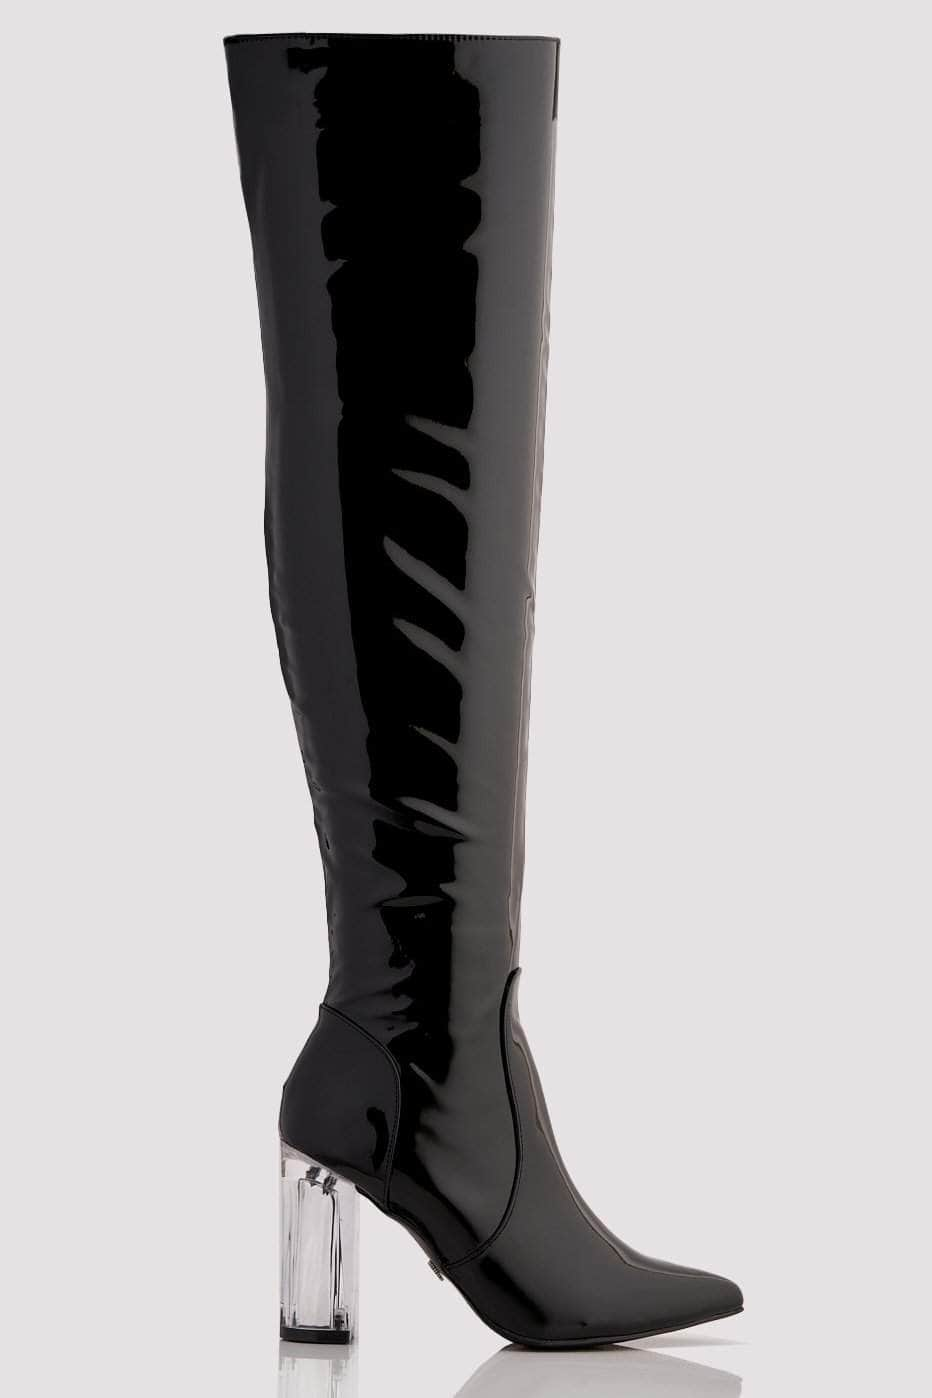 Black Patent Knee High Boots with Perspex Block Heel